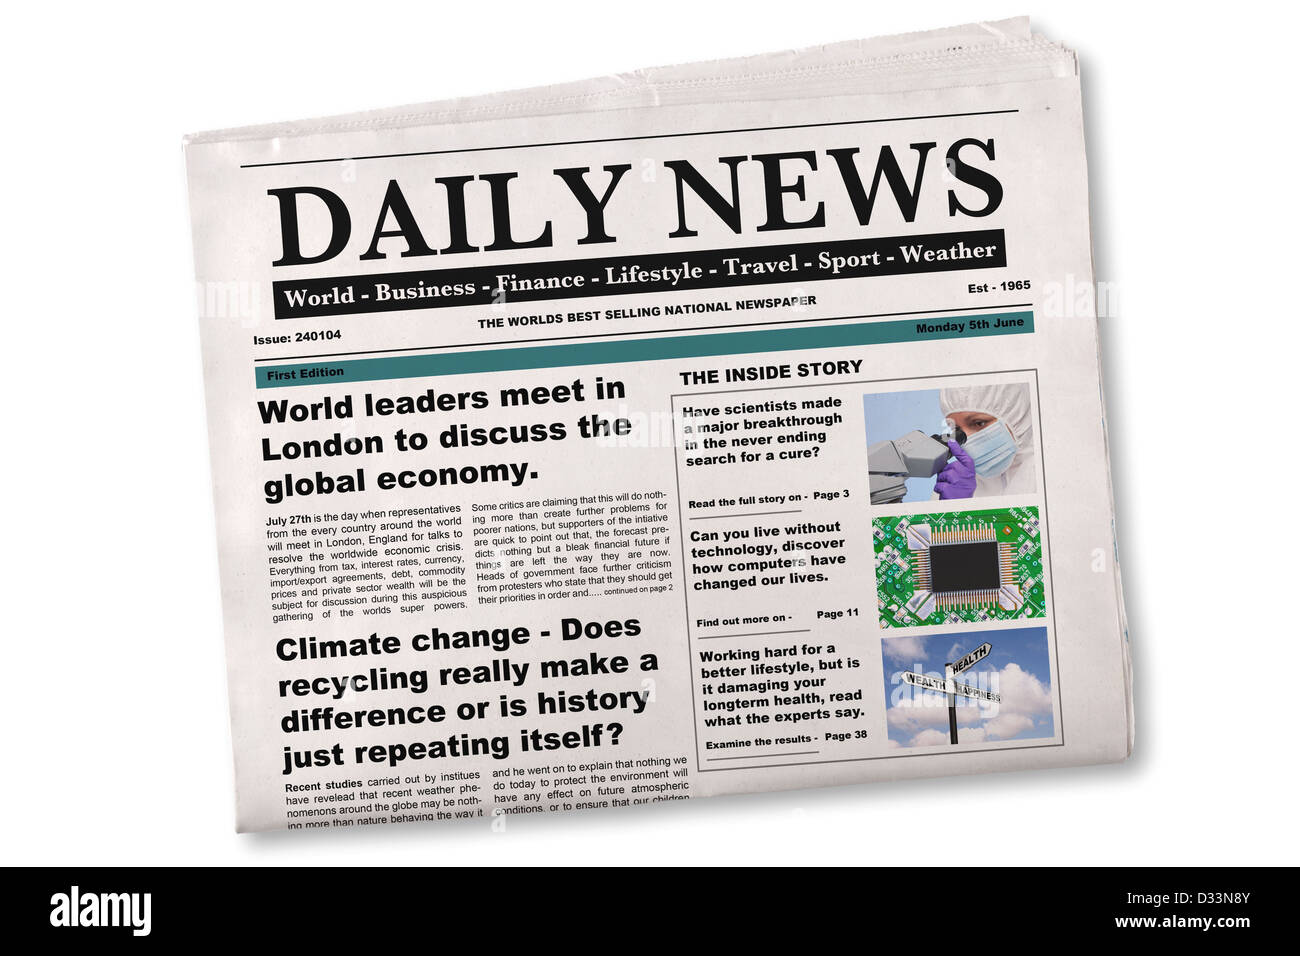 Mock up of a Daily newspaper on a white background. - Stock Image